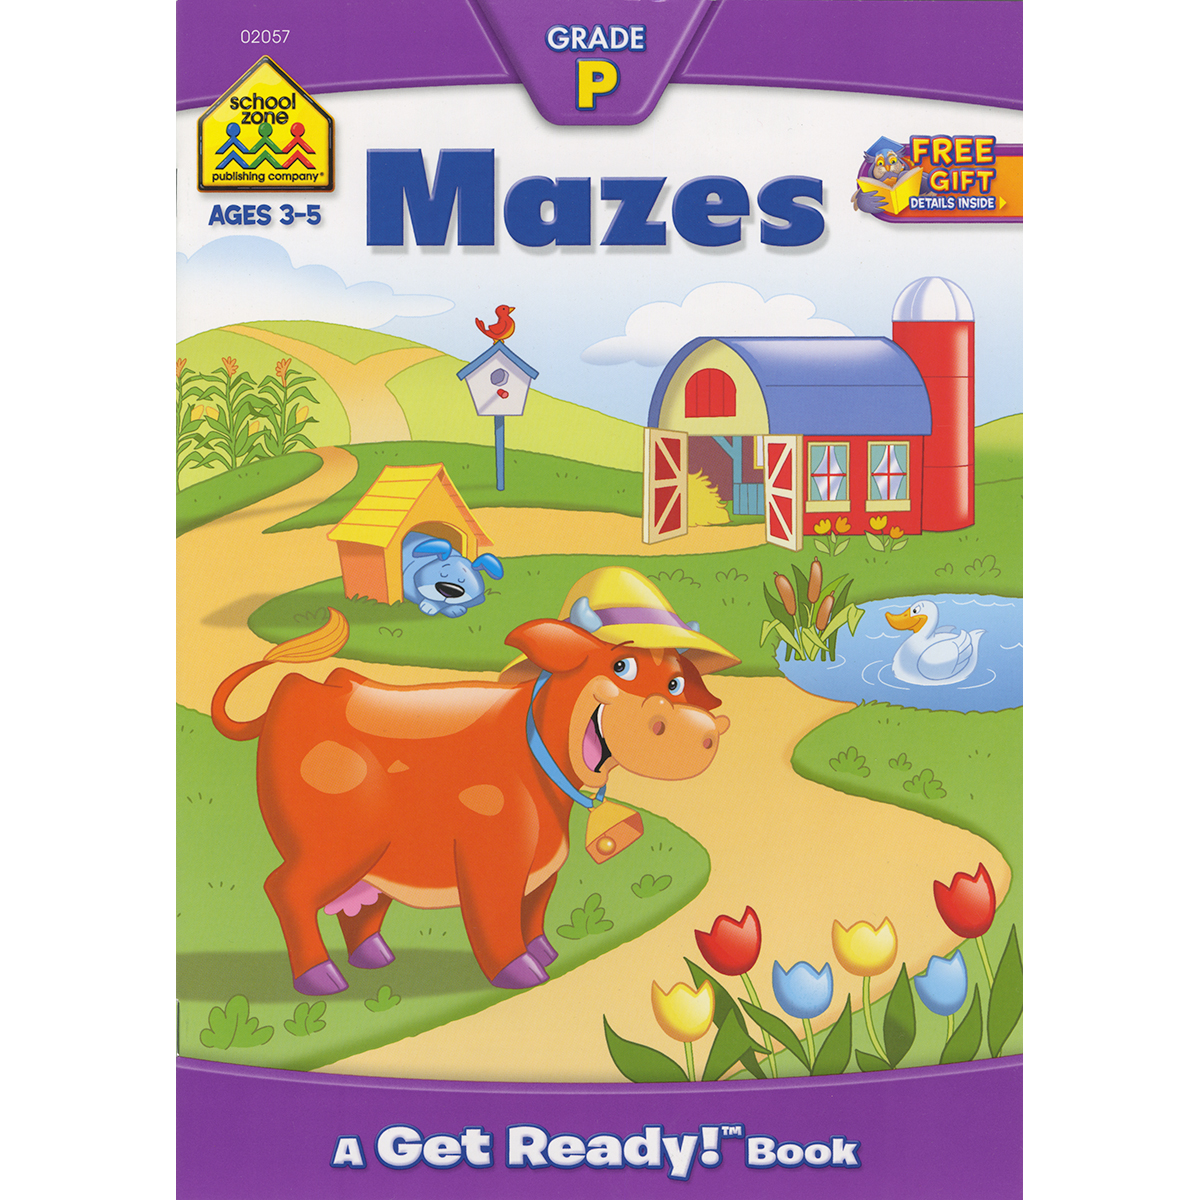 School Zone Preschool Workbooks 32 Pages-Mazes by School Zone